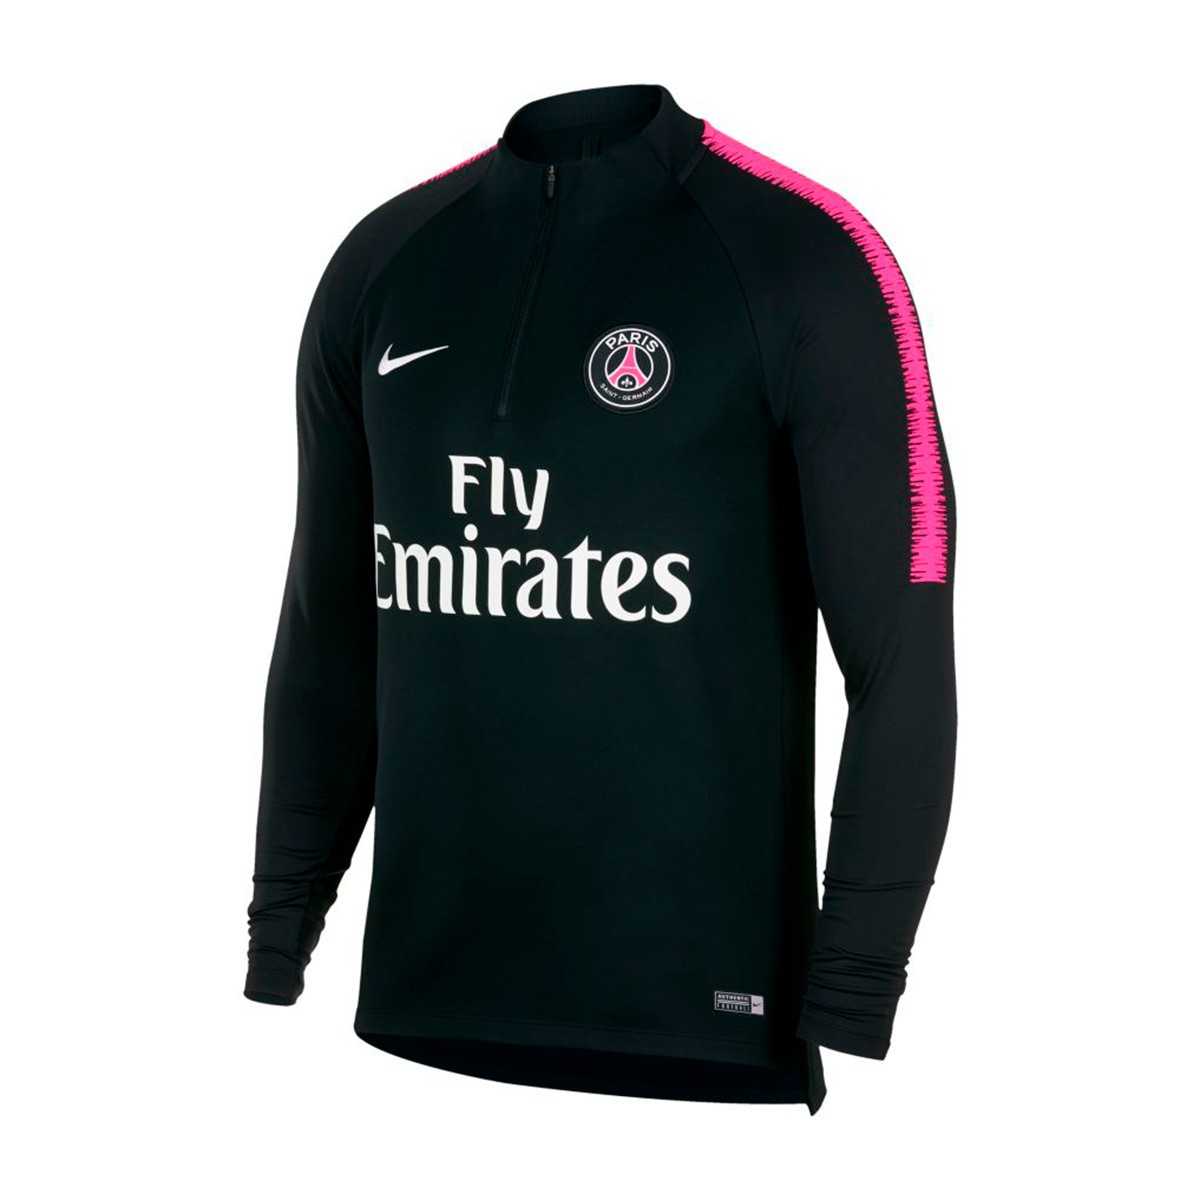 sweat nike paris saint germain dry squad 2018 2019 black hyper pink white boutique de football. Black Bedroom Furniture Sets. Home Design Ideas